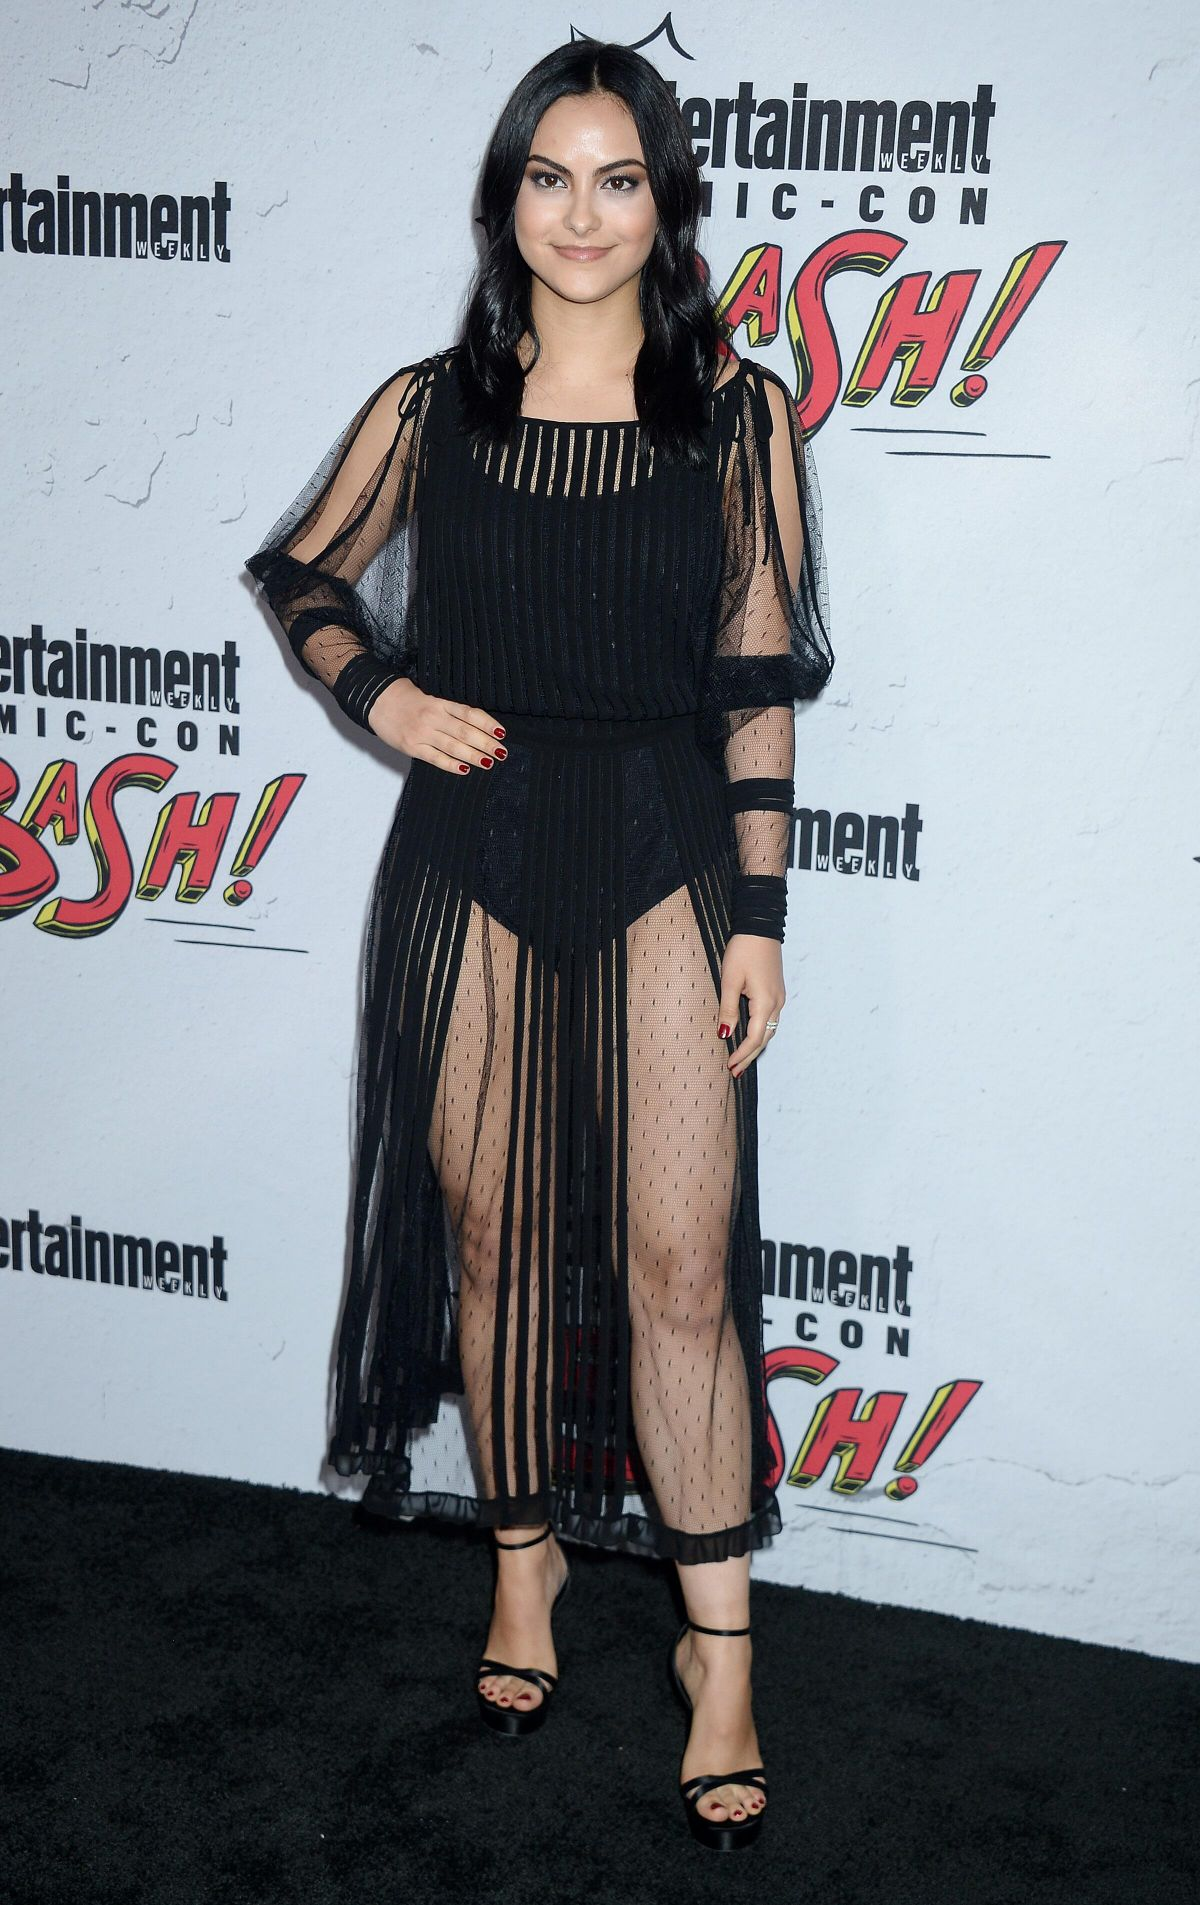 CAMILA MENDES at Entertainment Weekly's Comic-con Party in San Diego 07/22/2017